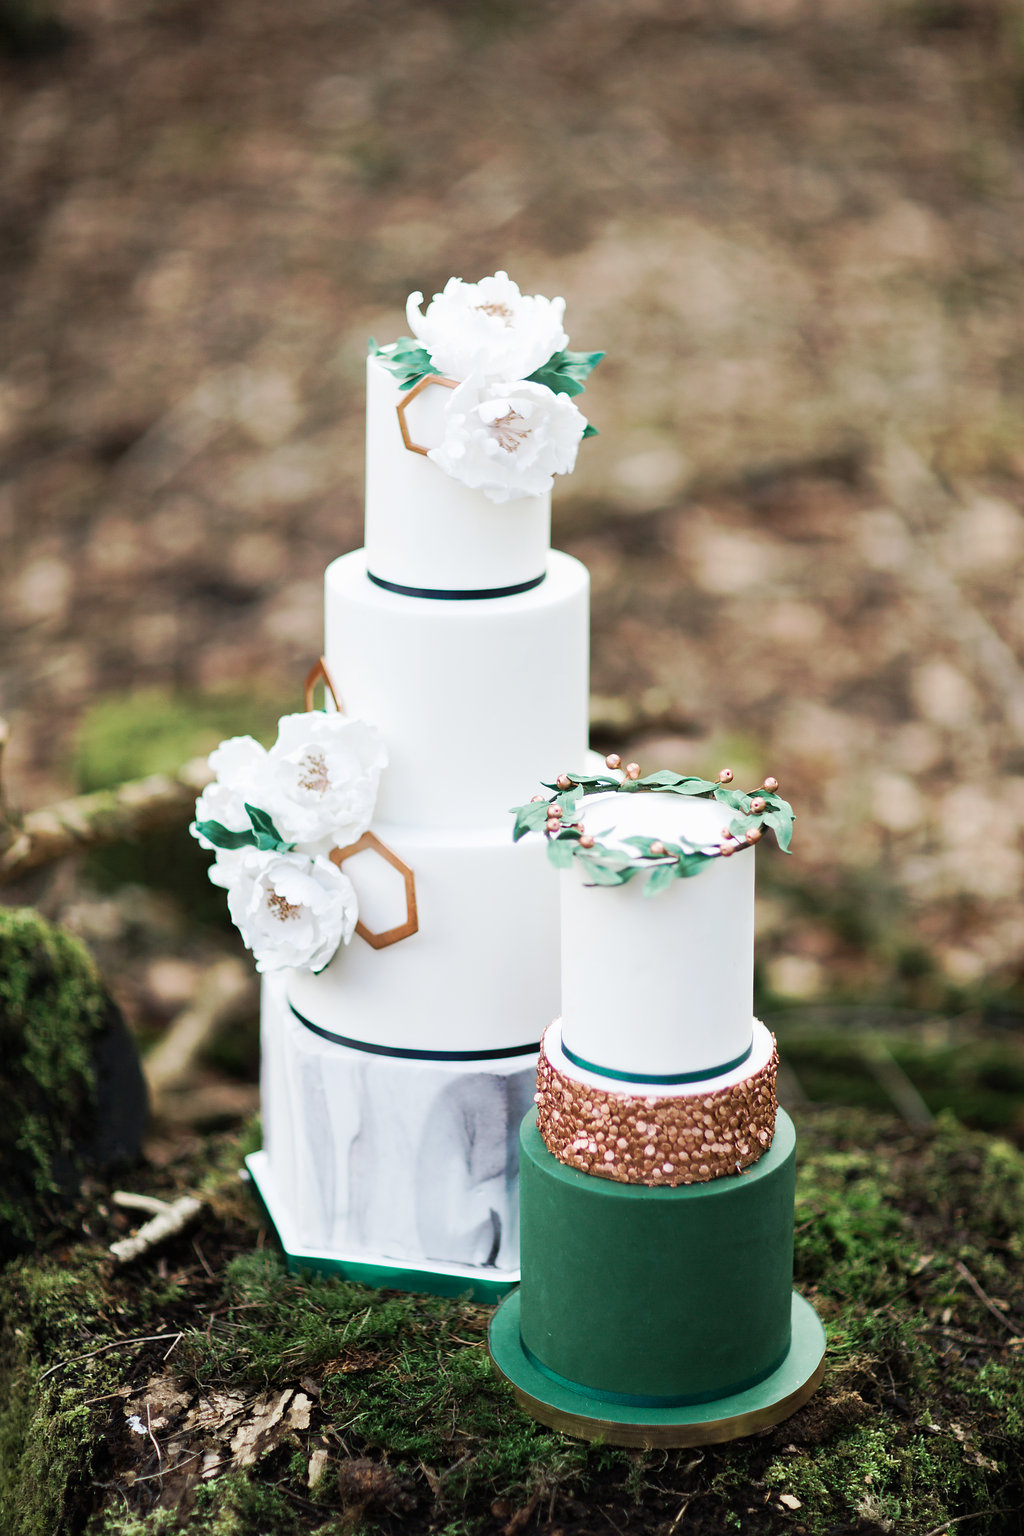 The stunning emerald and gold wedding cakes are decorated with geo patterns